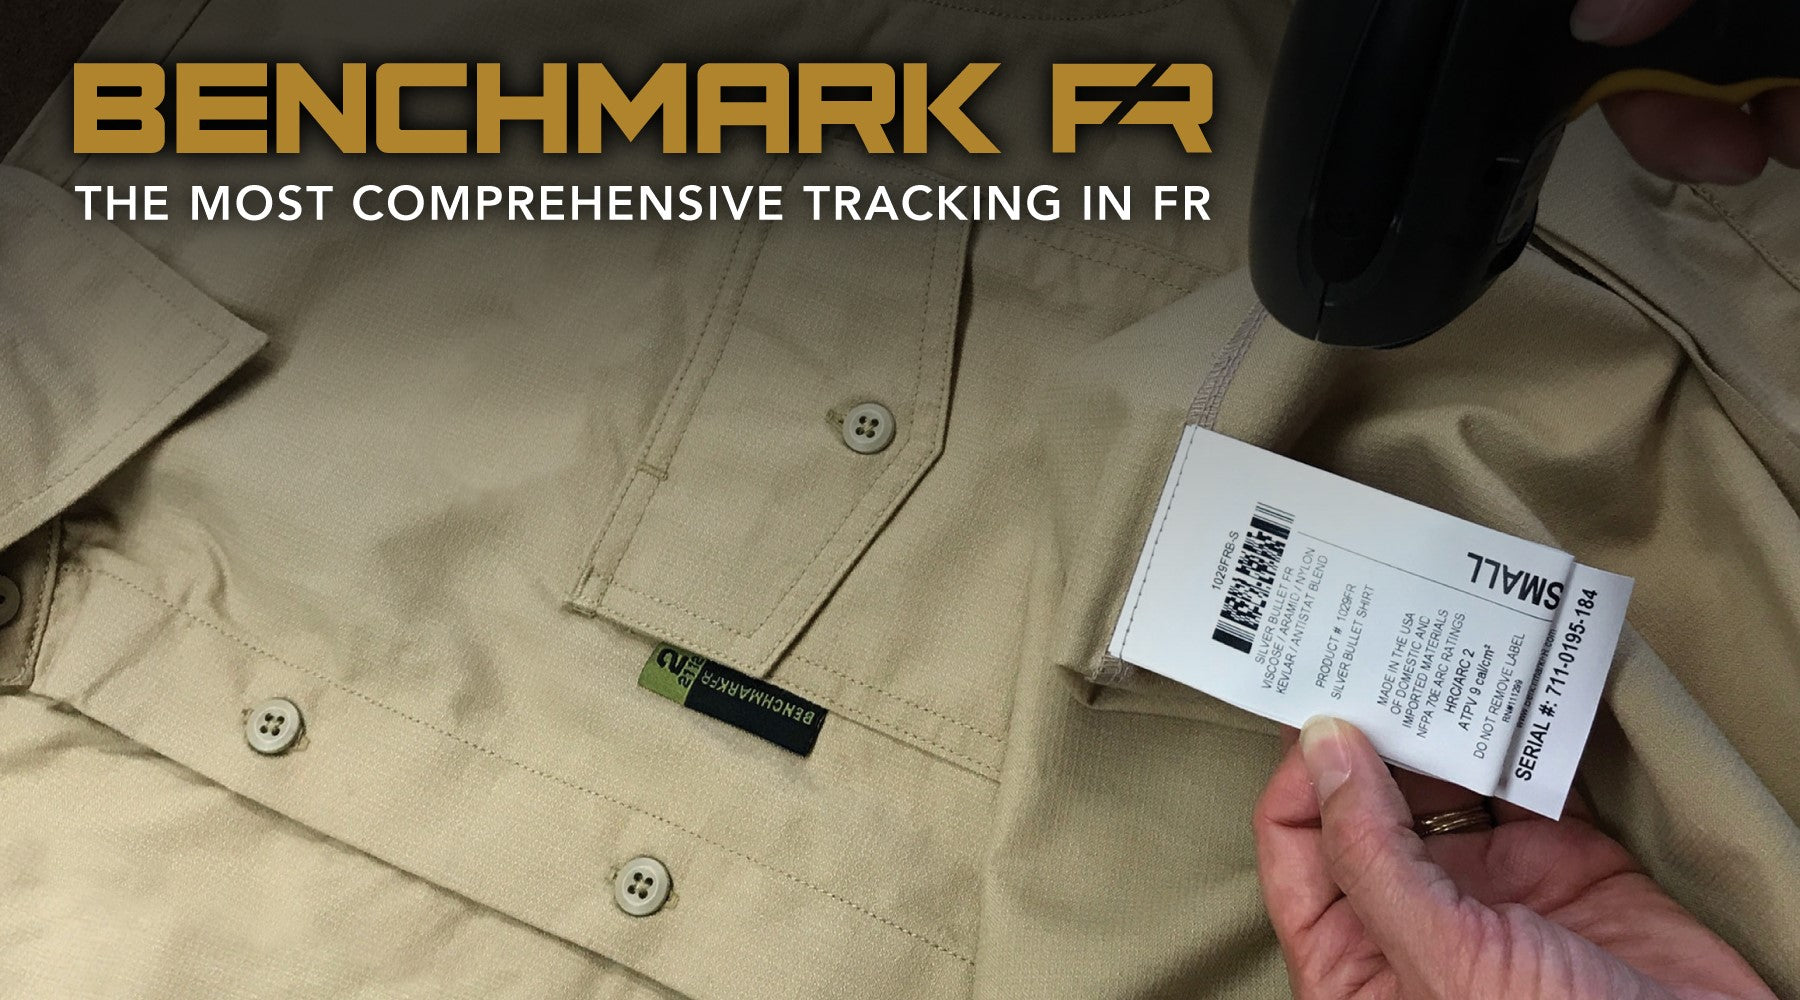 benchmark fr serial numbers banner graphic